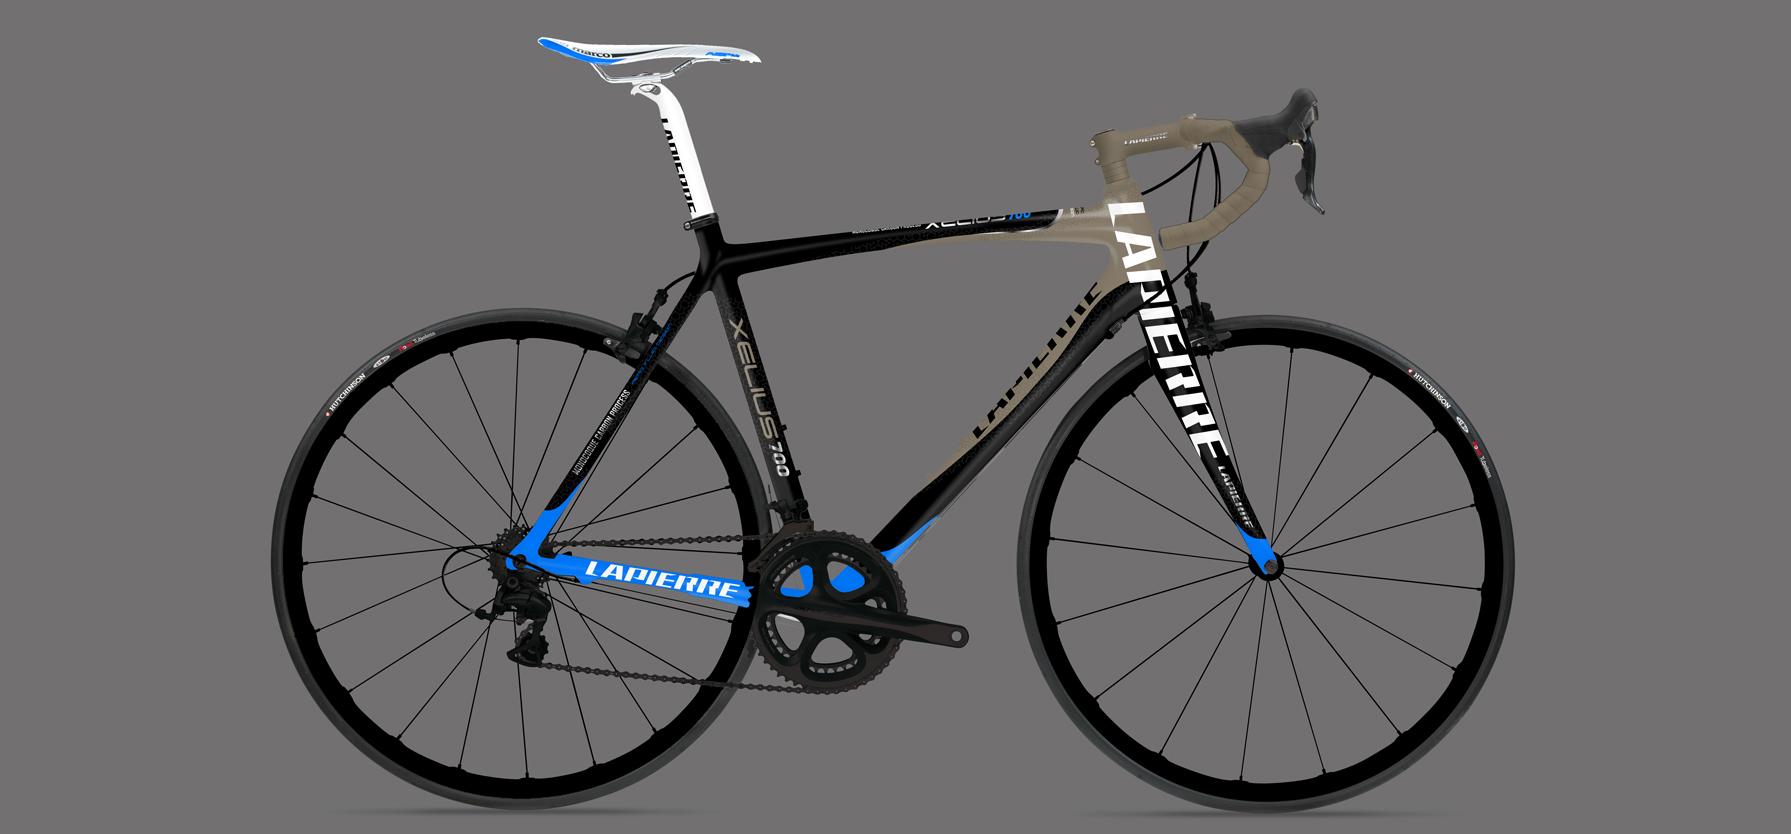 cycle_lapierre_gamme_course_3